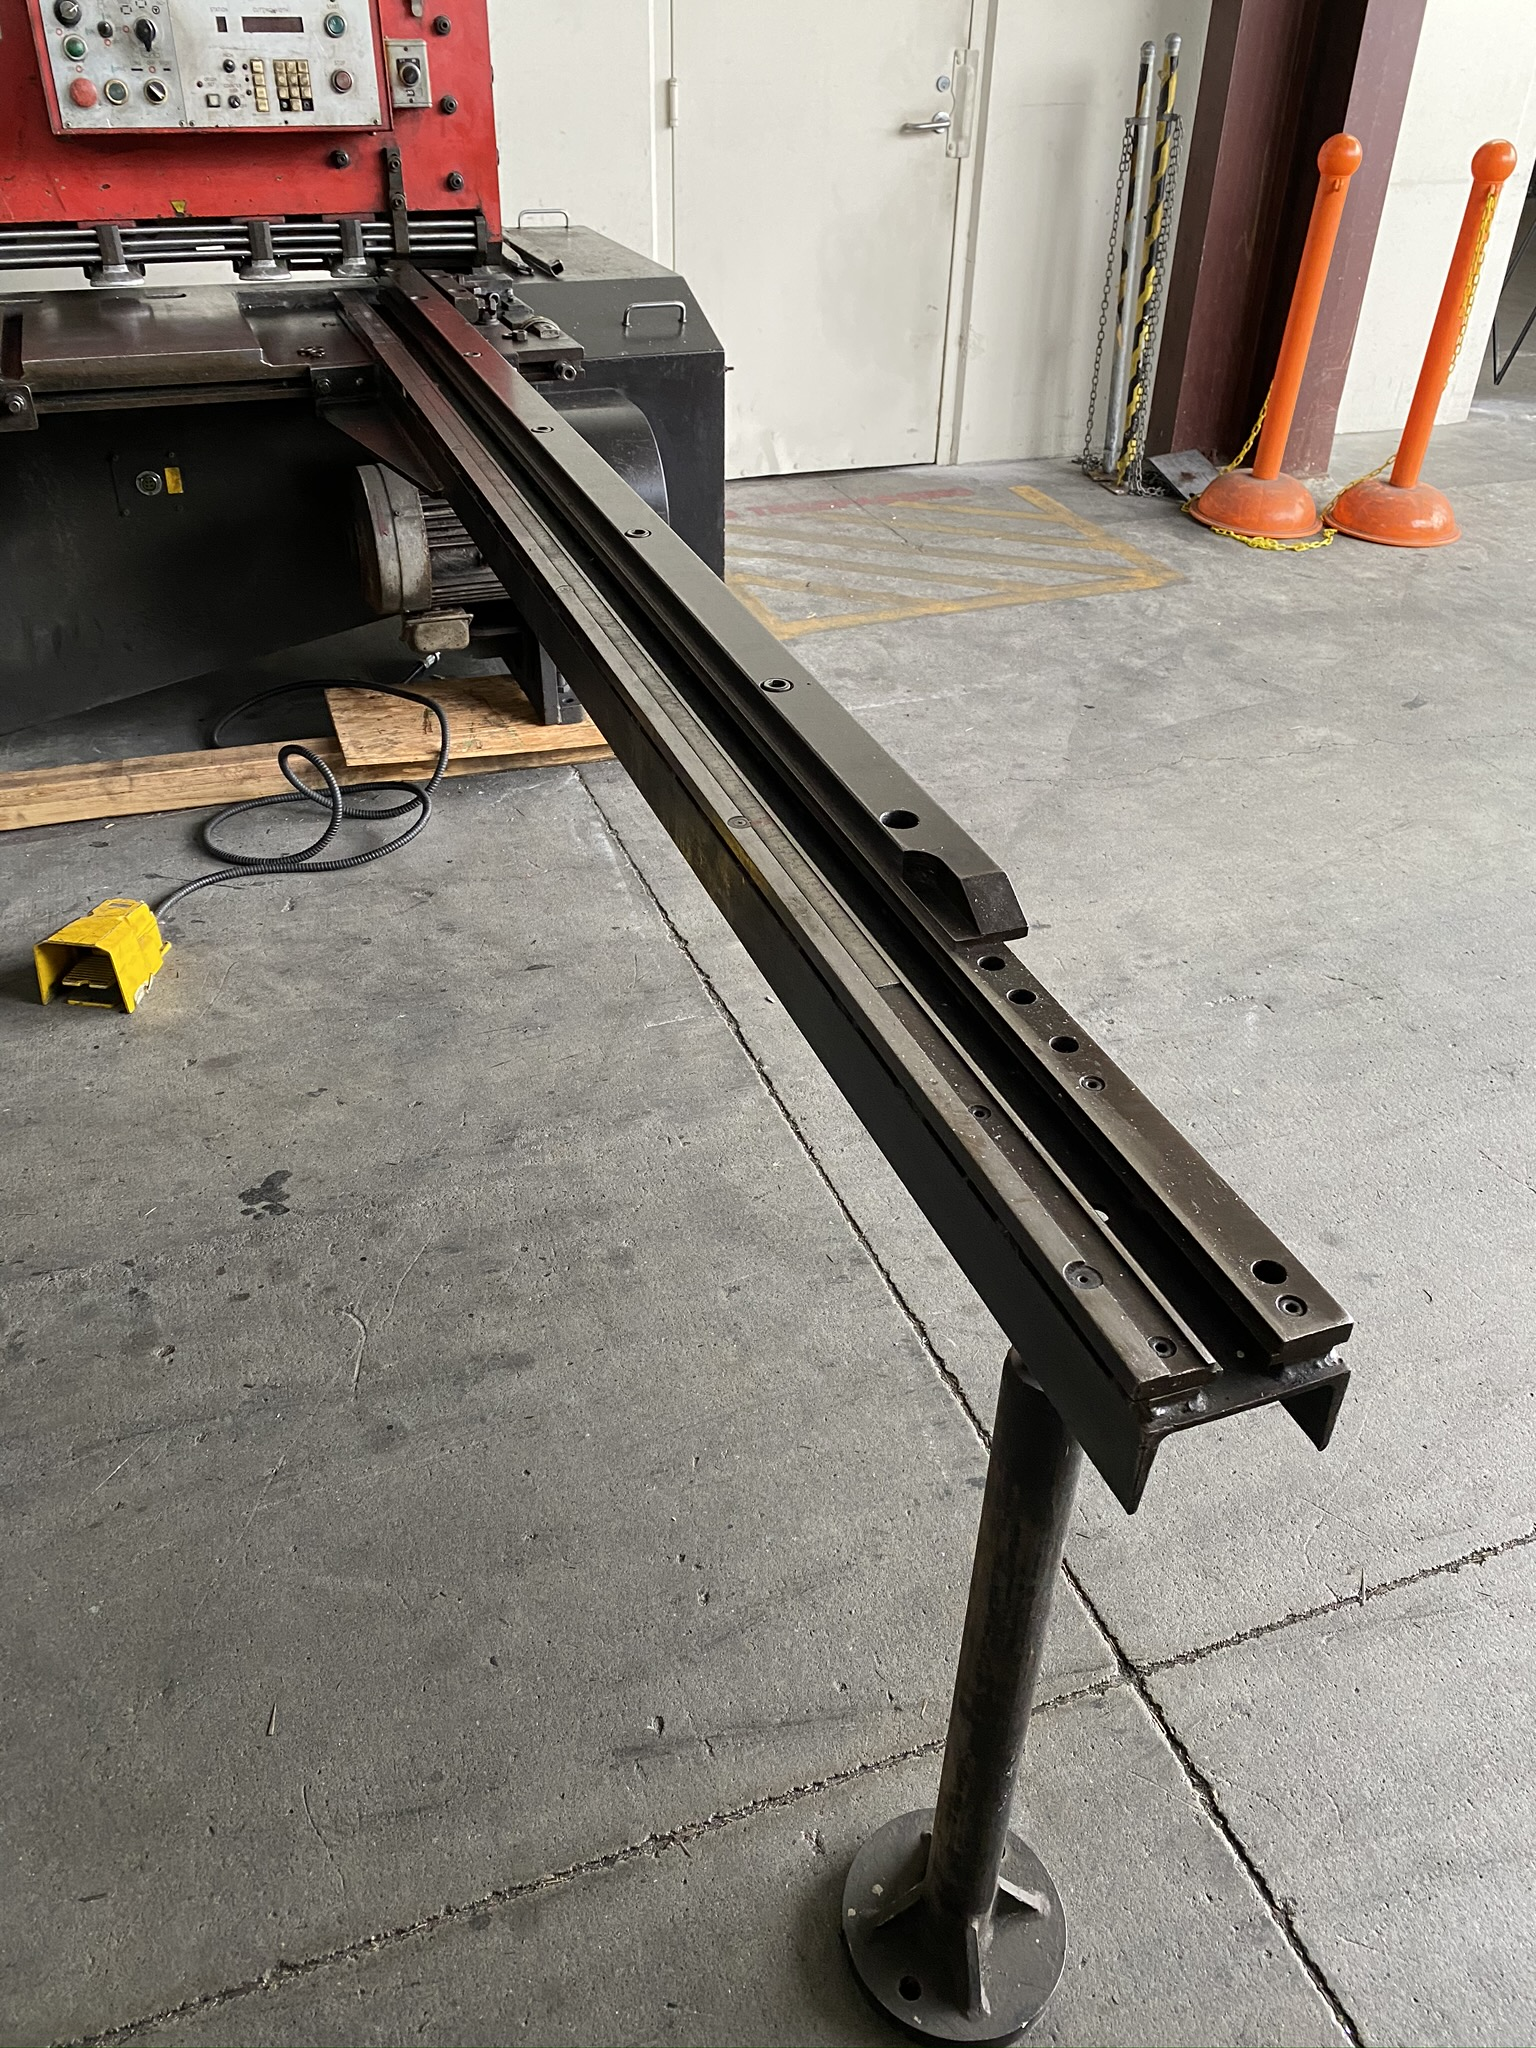 1990 AMADA M-2560 SHEAR, 2500 MM, LENGTH, 6 MM THICKNESS, MECHANICAL, SHEET SUPPORTS - Image 7 of 14